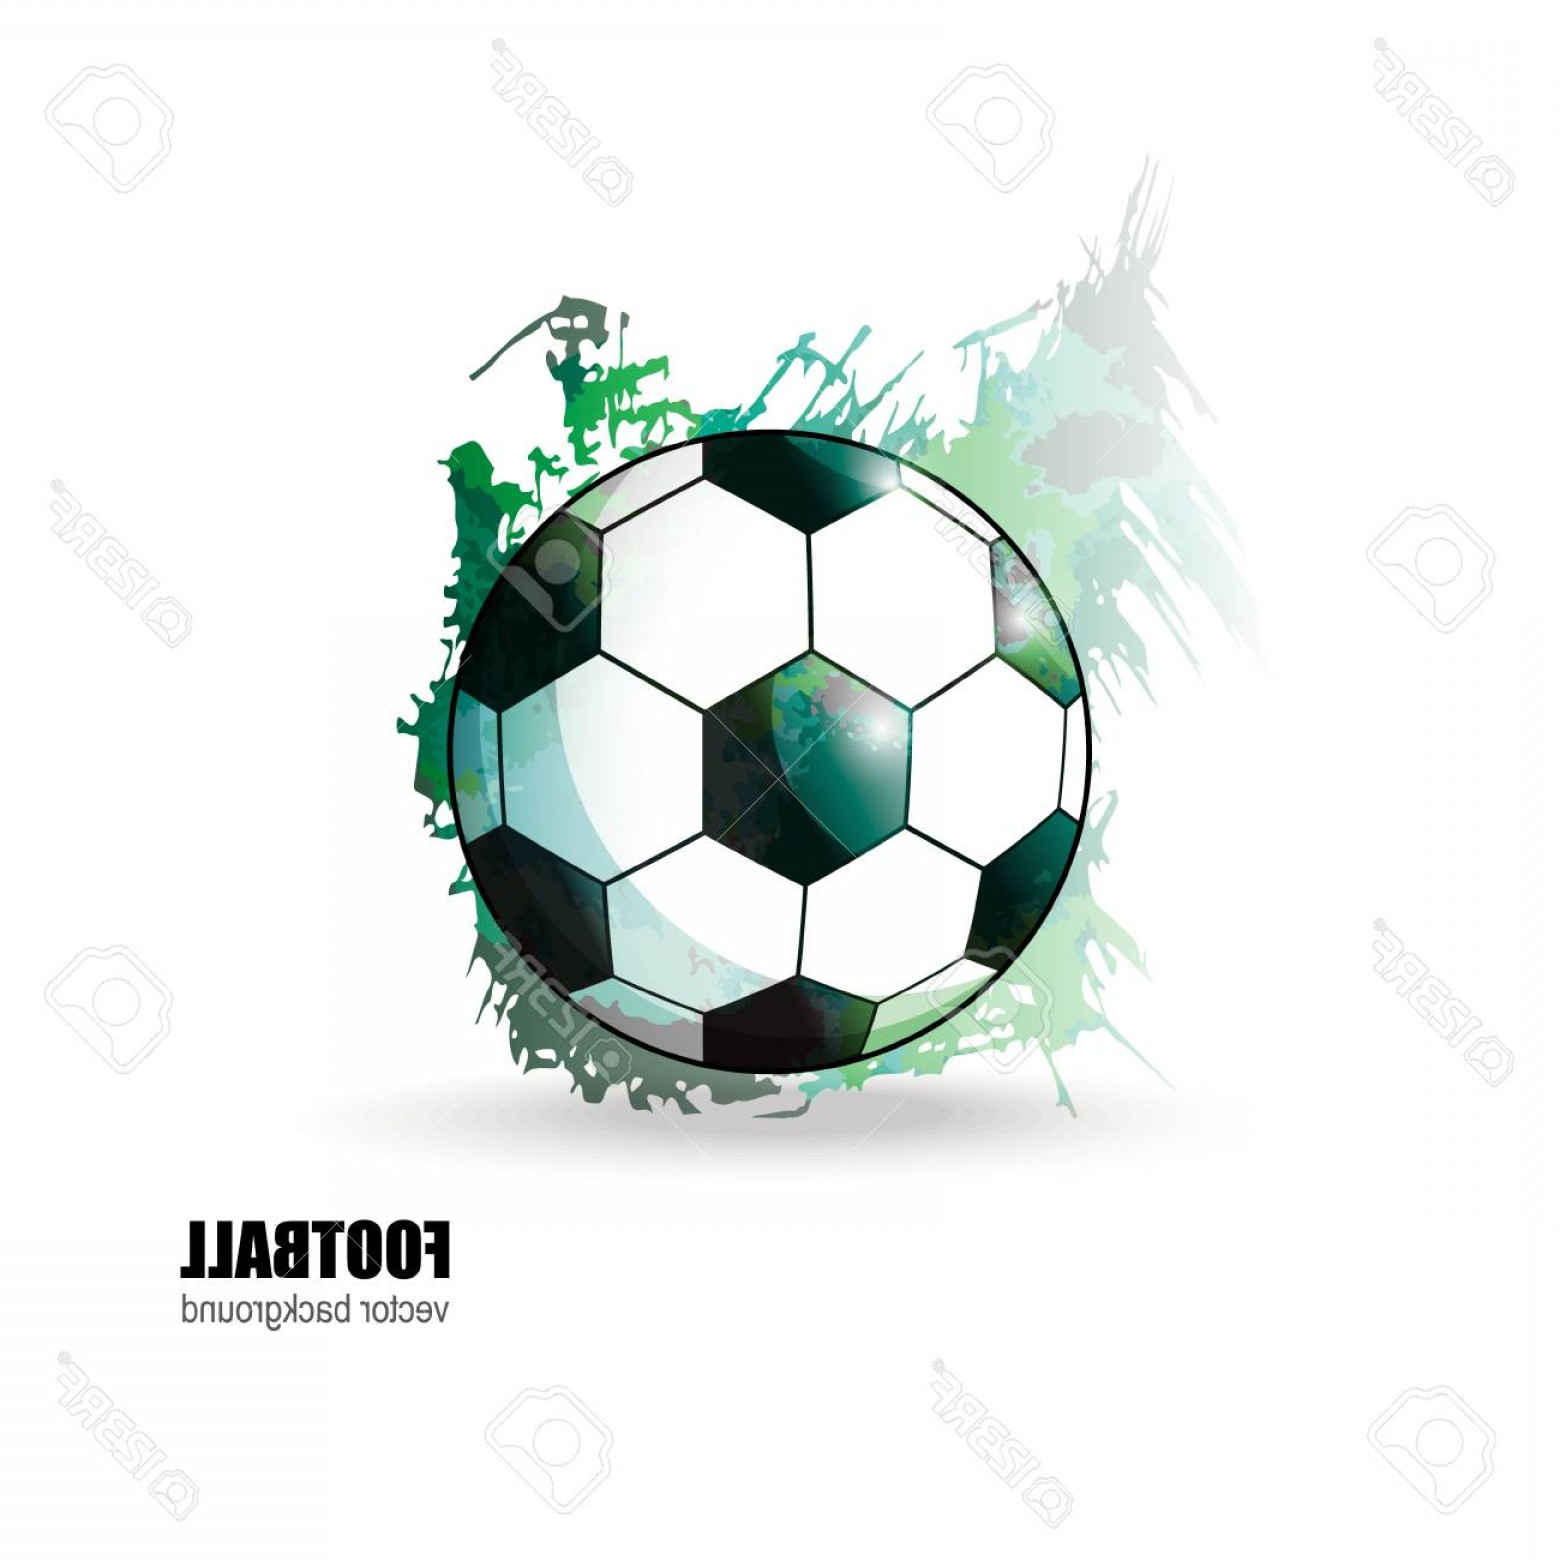 Abstract Football Vector Outline: Photostock Vector Soccer Ball Abstract Background The Watercolor Effect Football Vector Illustration For Cover Textile